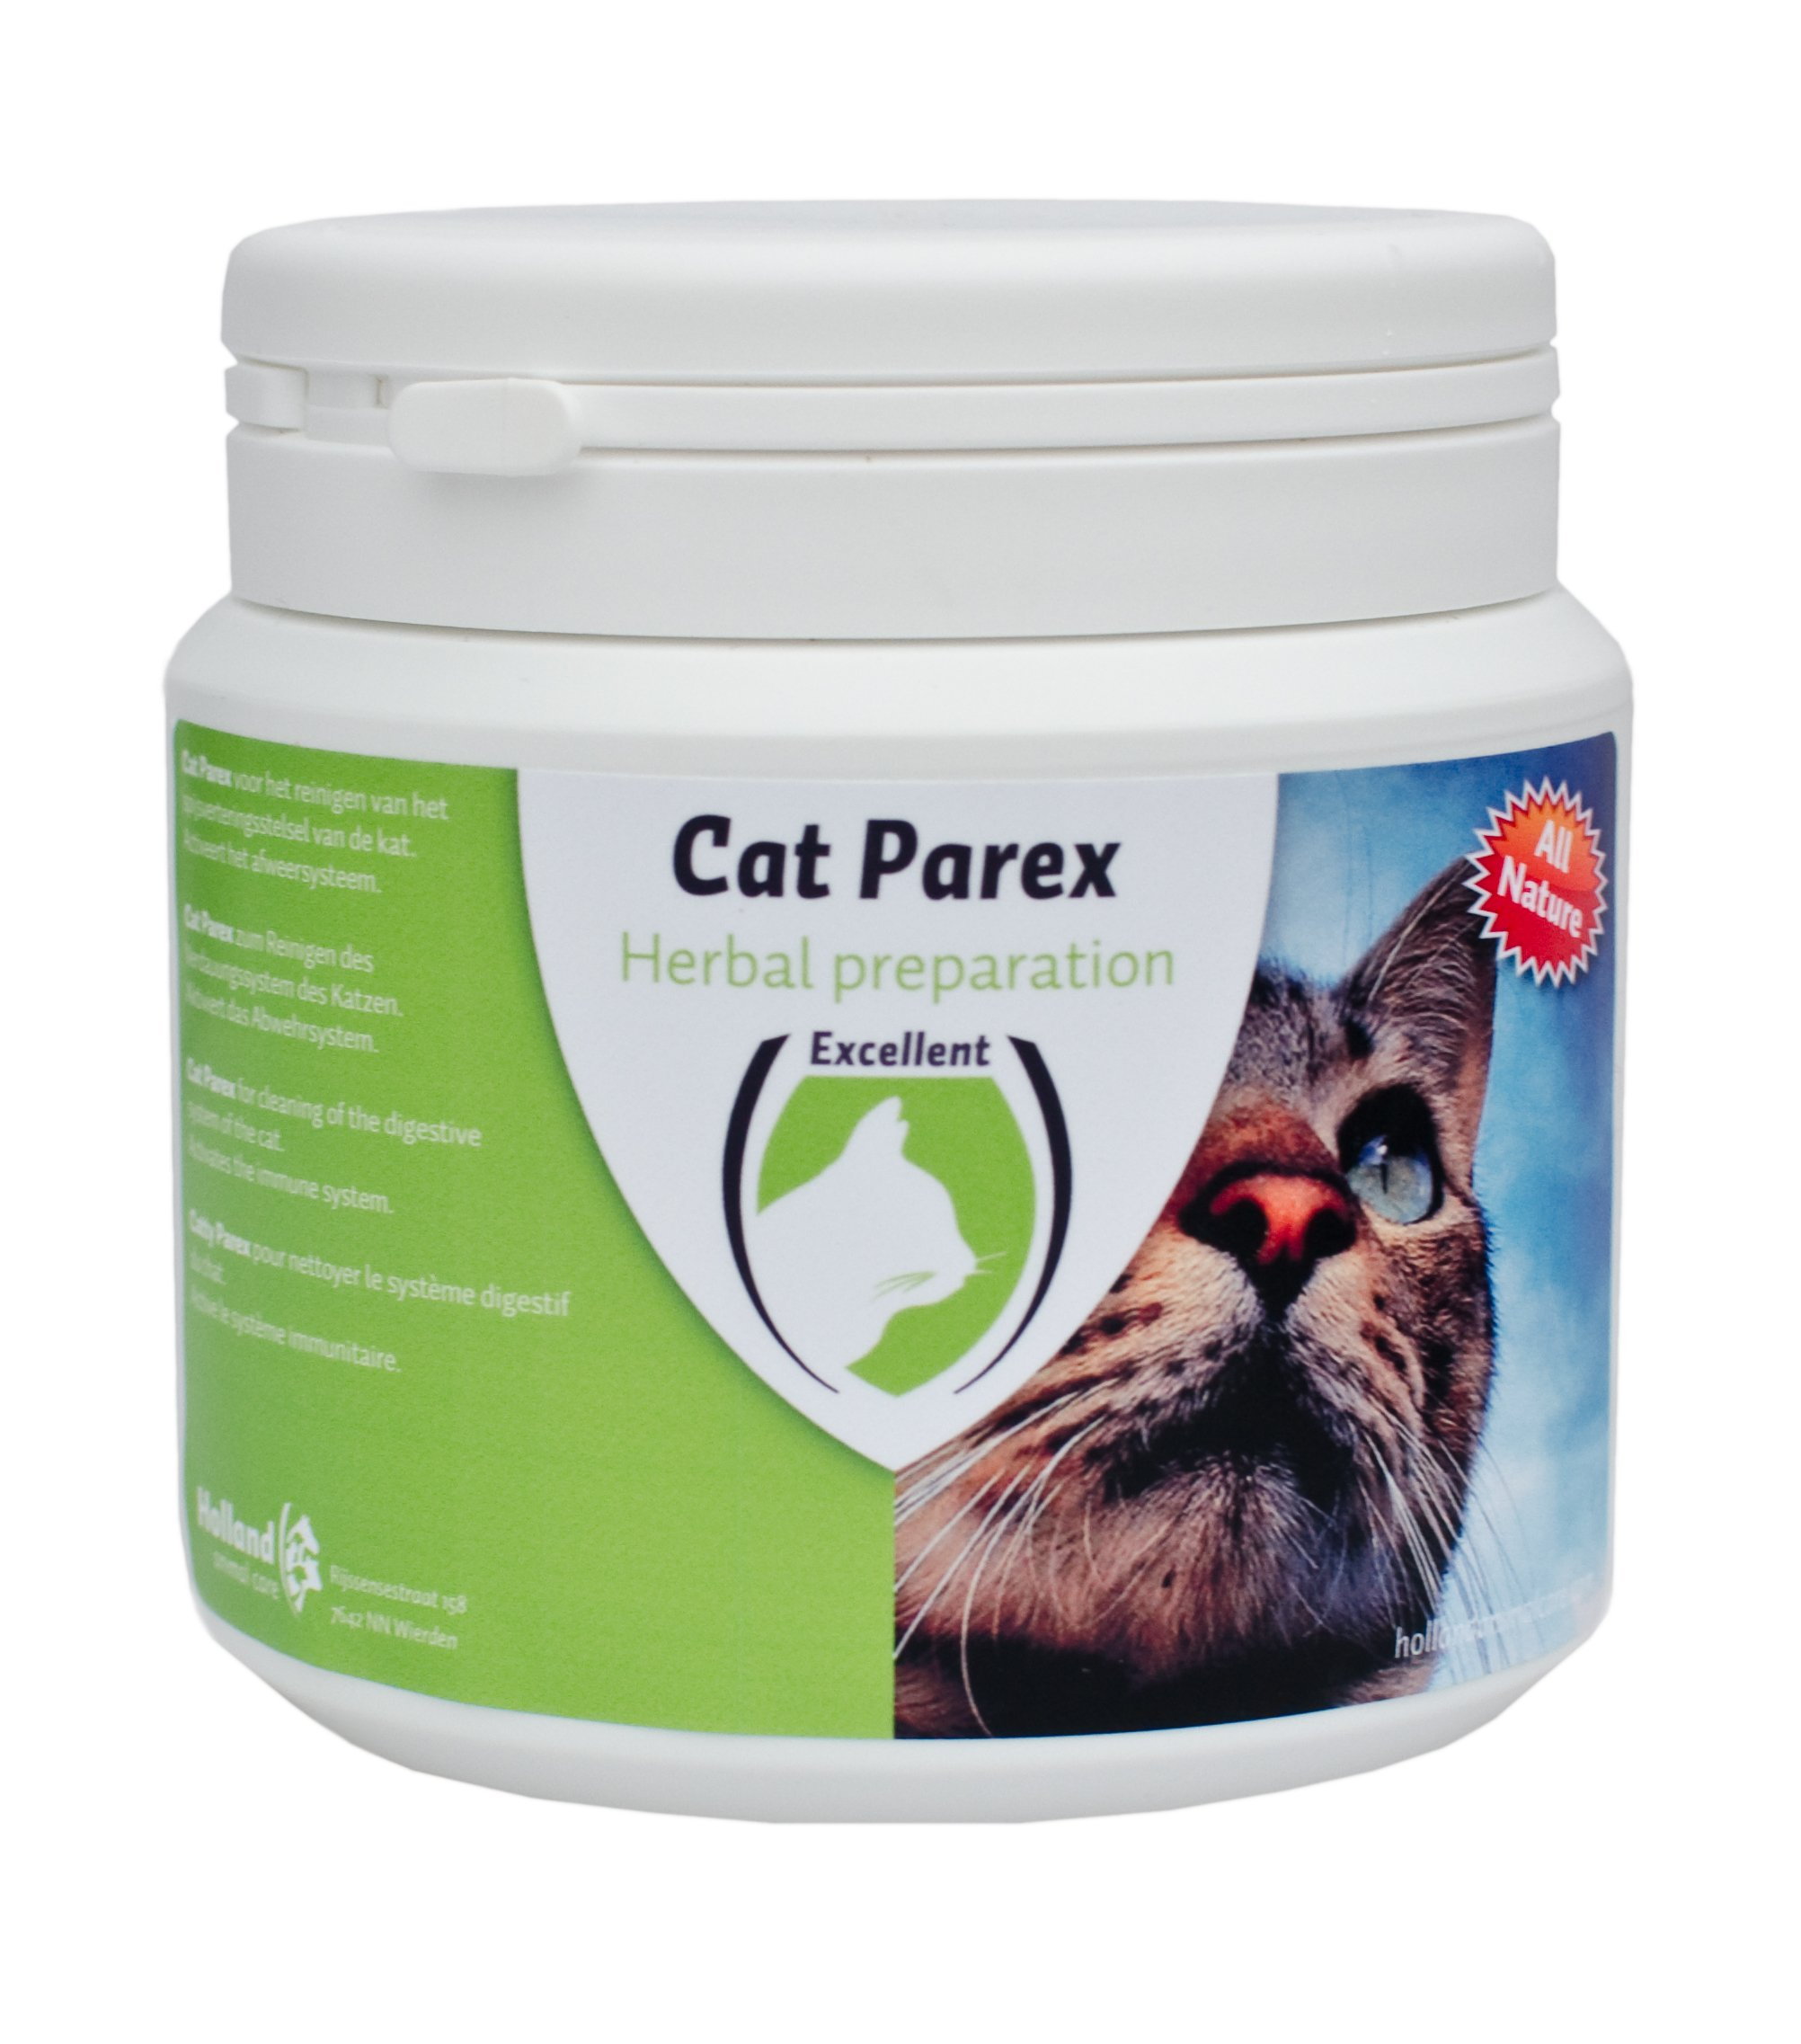 Cat Parex